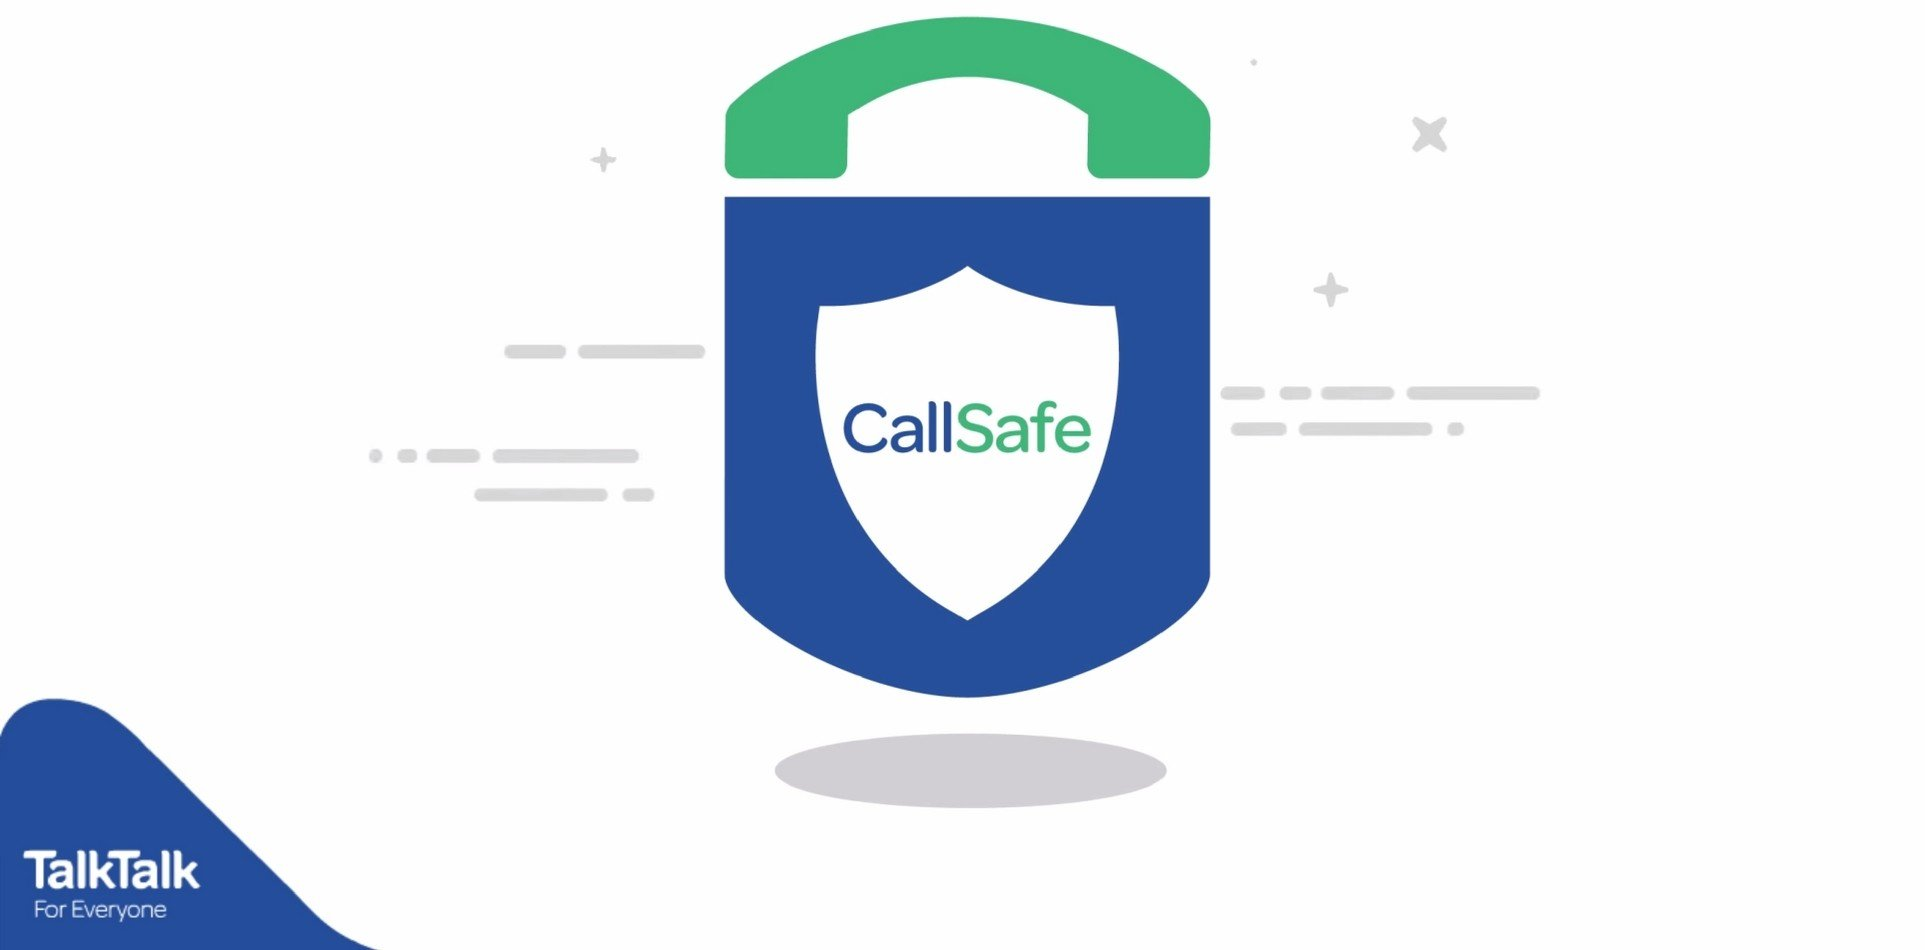 TalkTalk's newest service, CallSafe, is realized based on a virtualized, next-generation solution from ECT